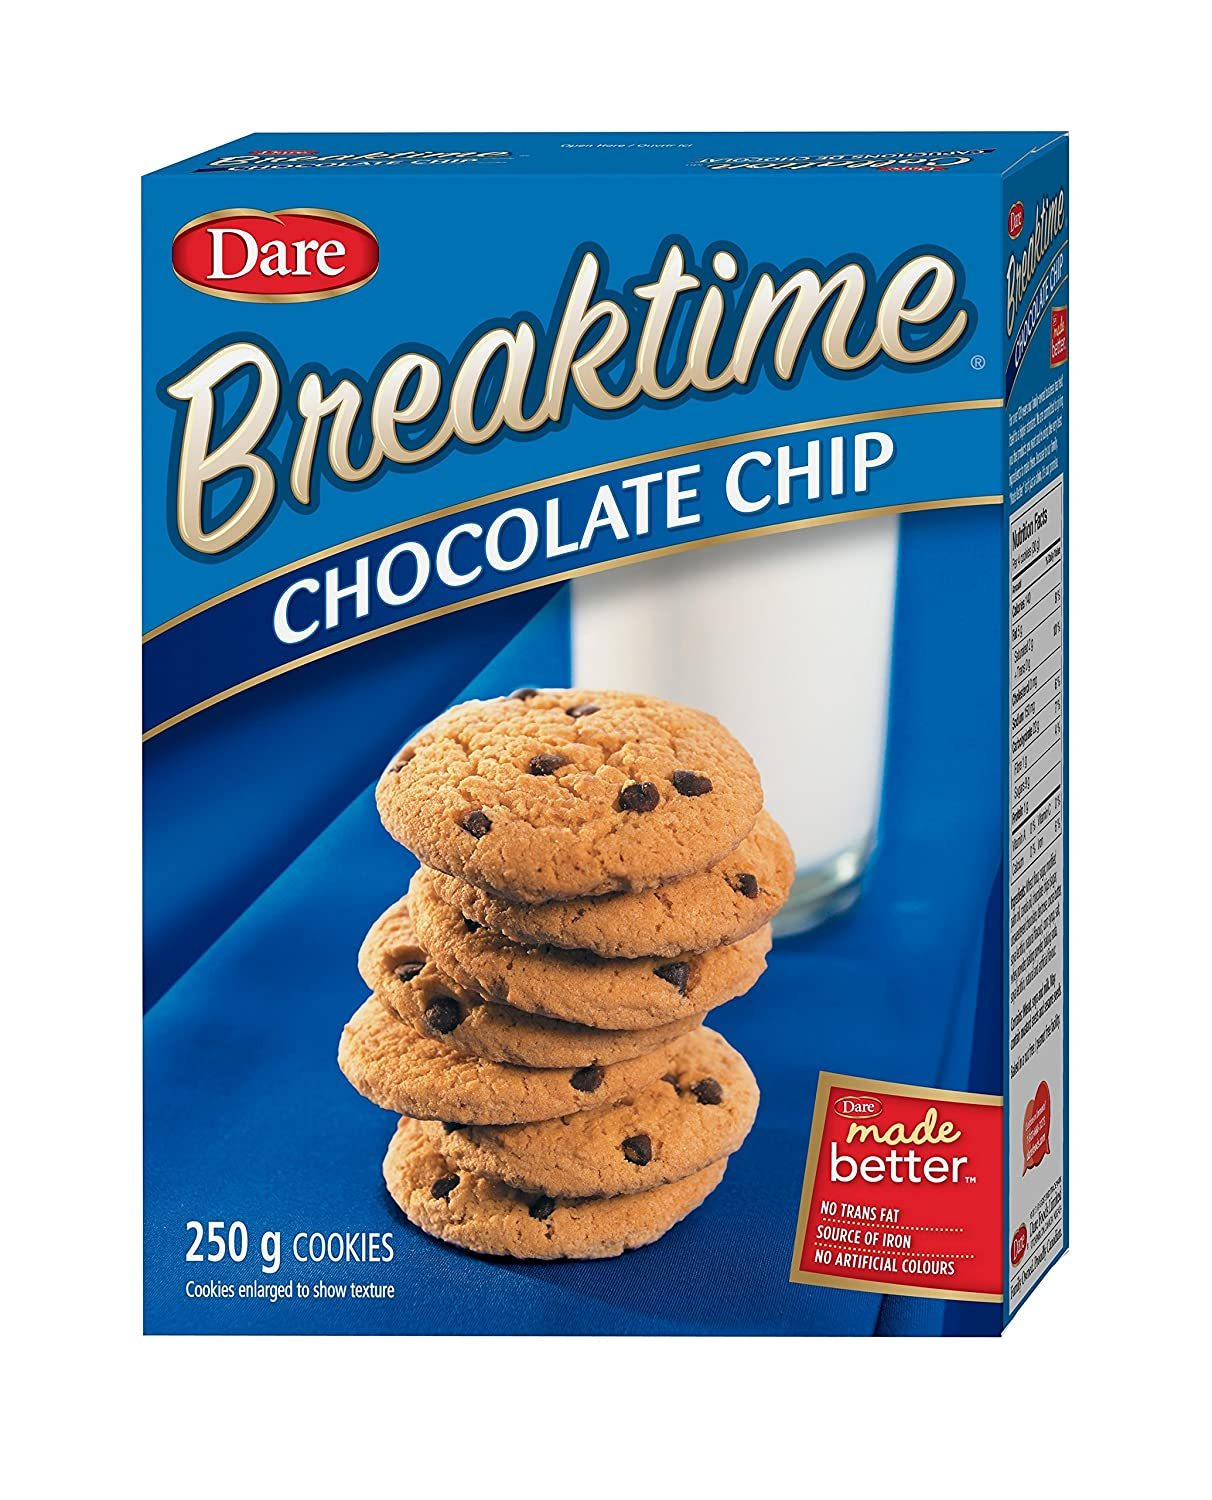 stl>Breaktime Chocolate Chip Cookies - 250g